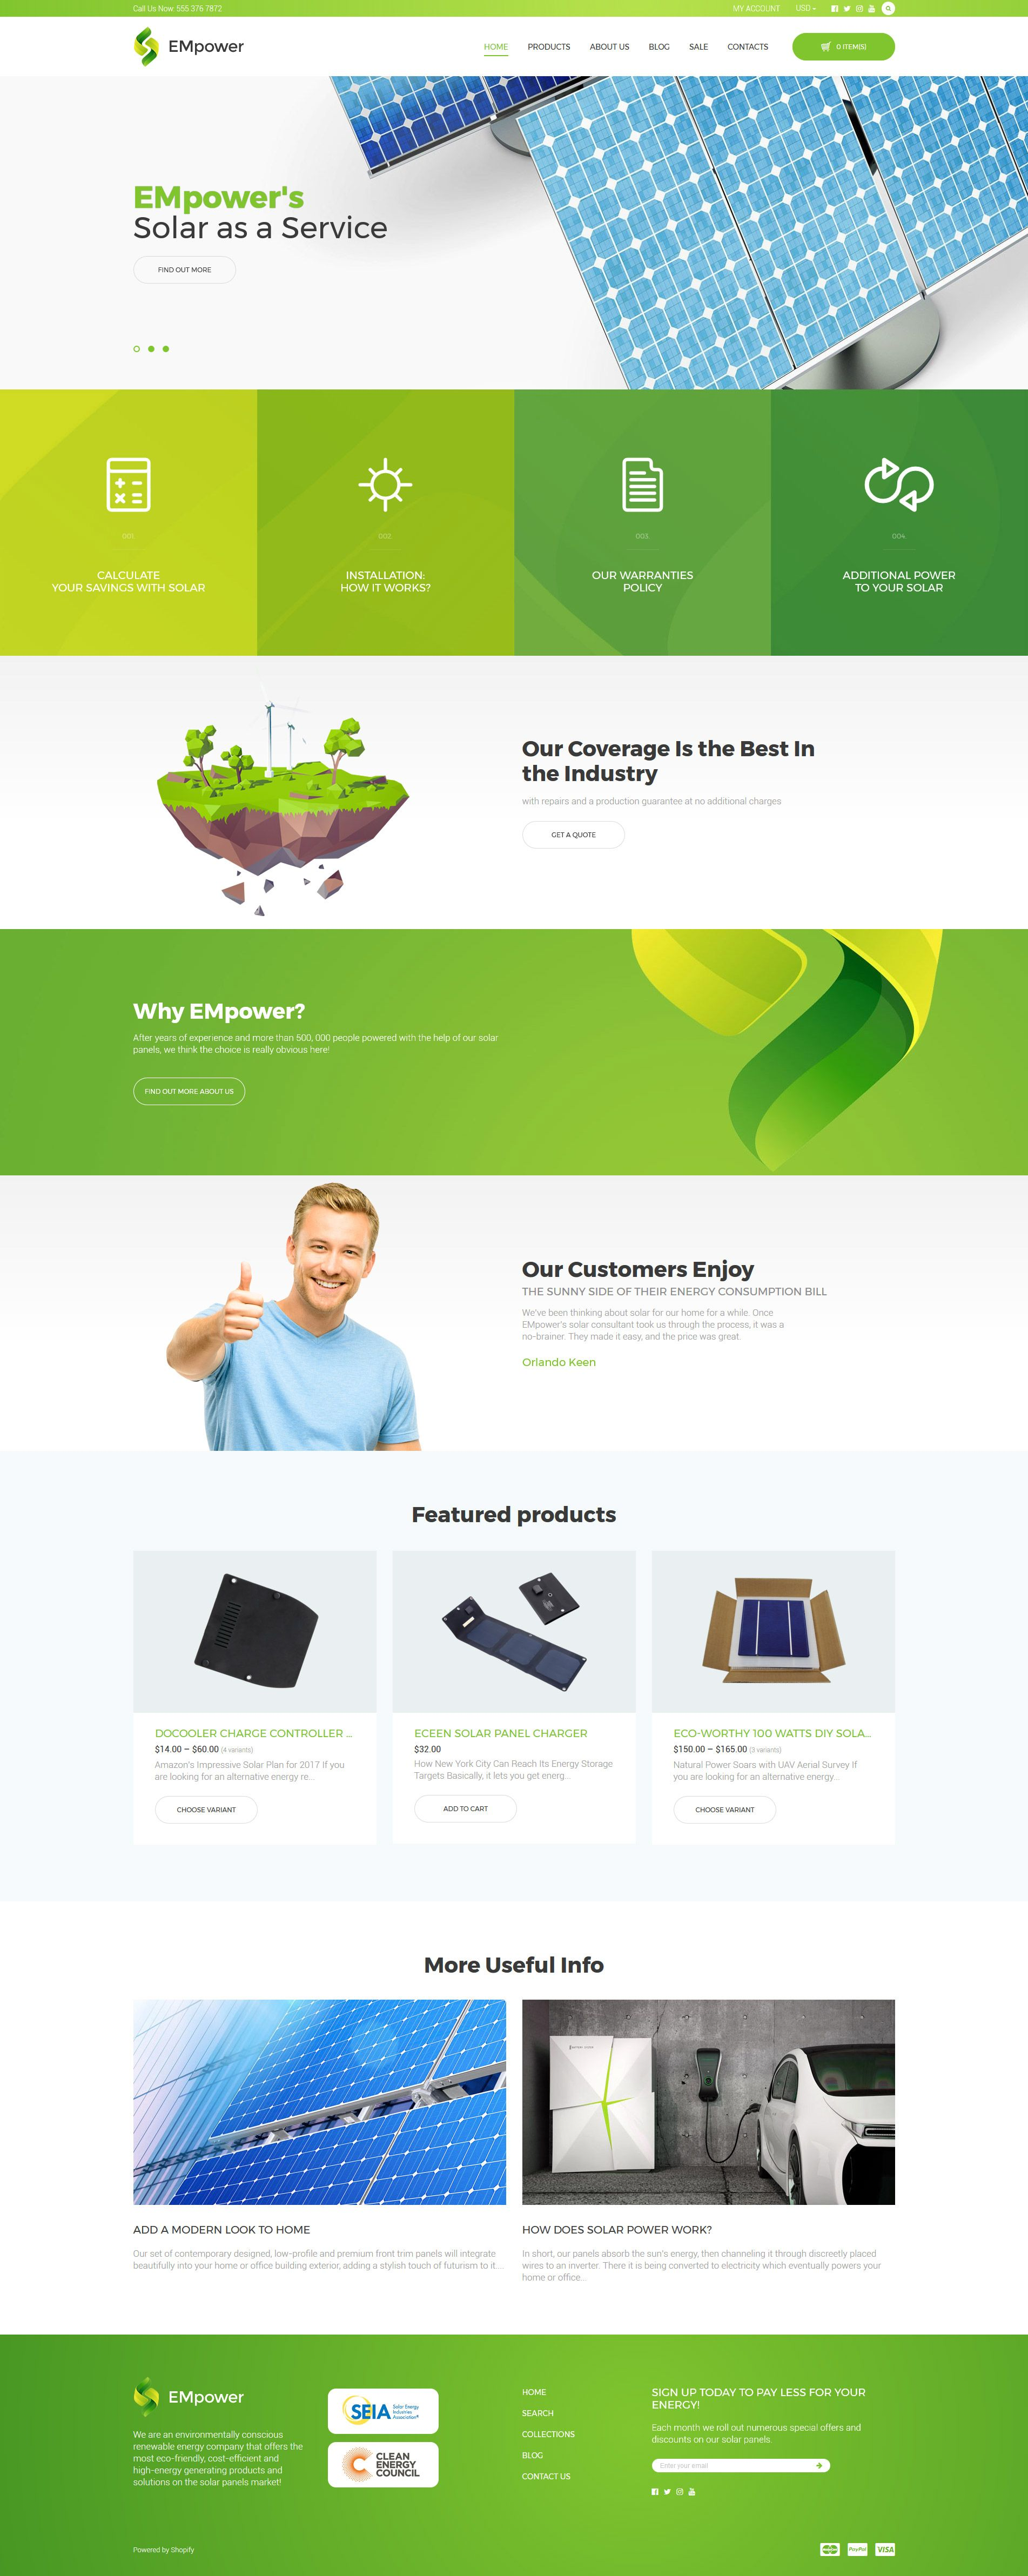 EMpower Solar Energy Shopify Theme Website Template